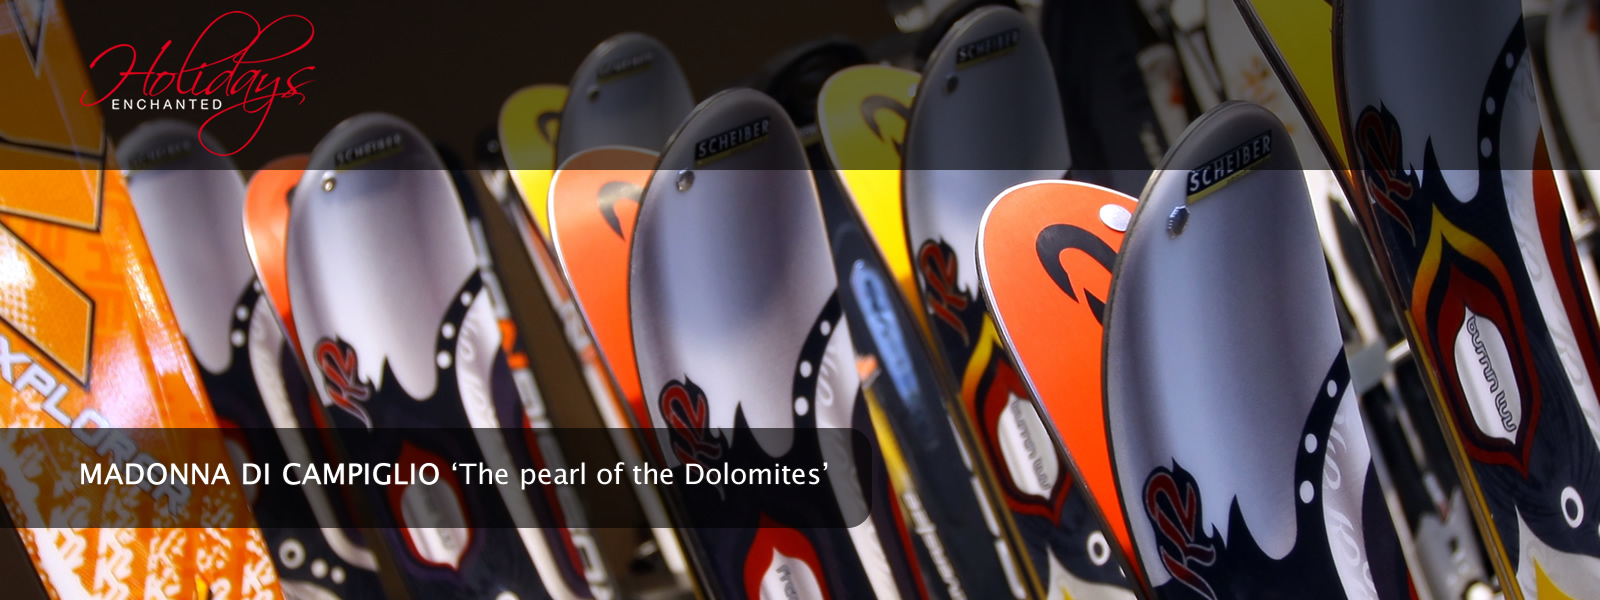 Ski and Snowboard Equipment Rental Shop in Madonna di Campiglio